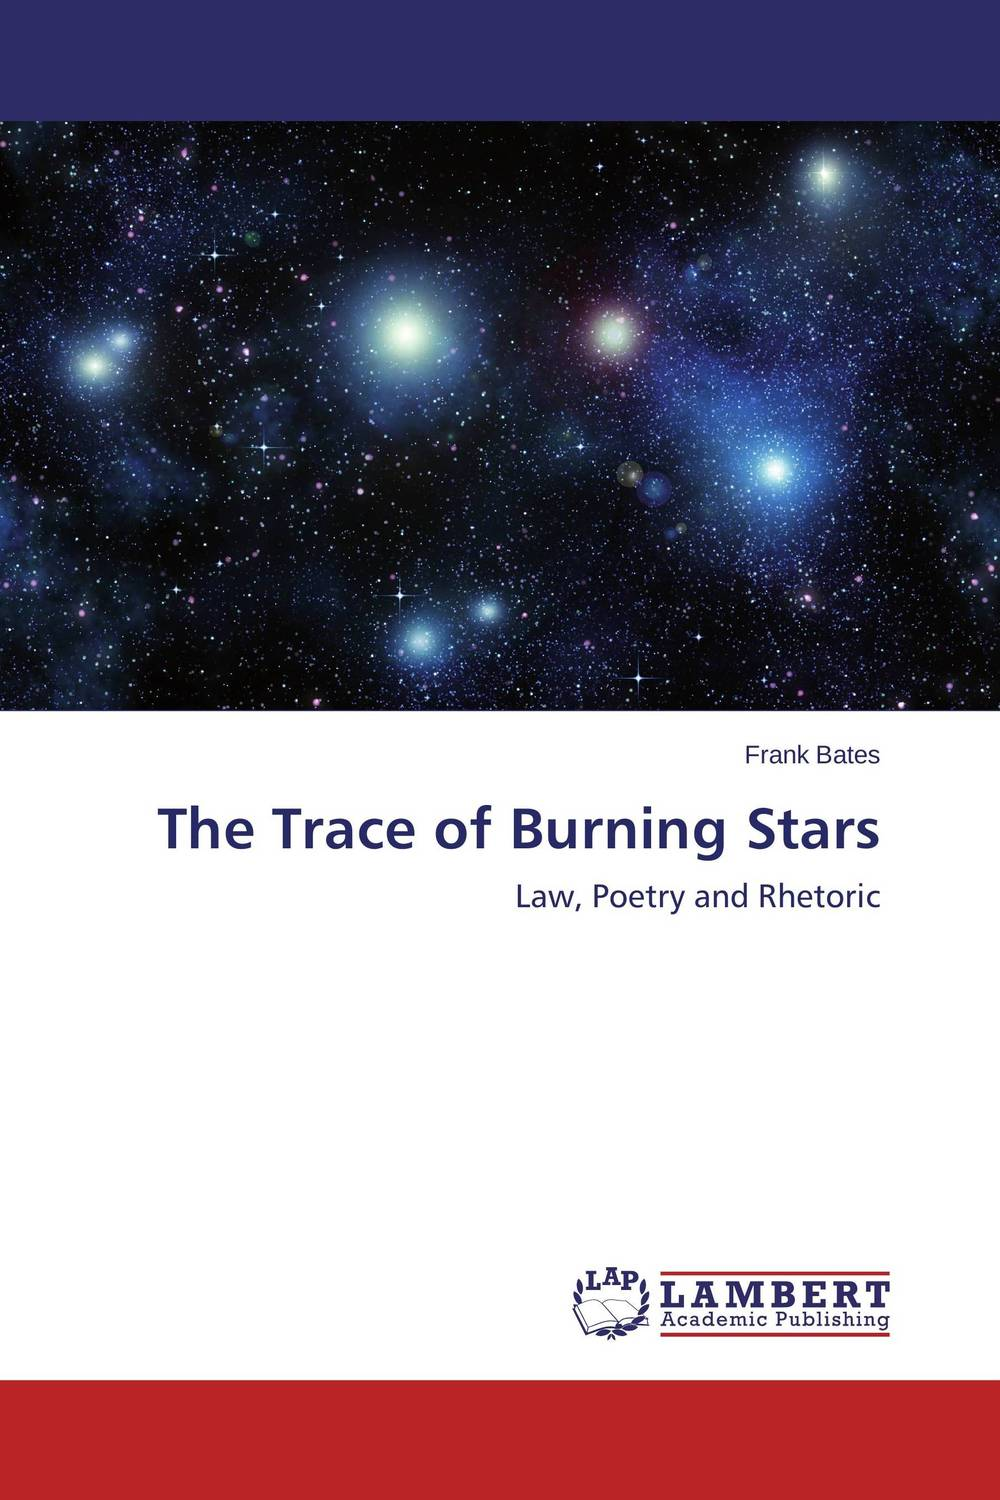 The Trace of Burning Stars